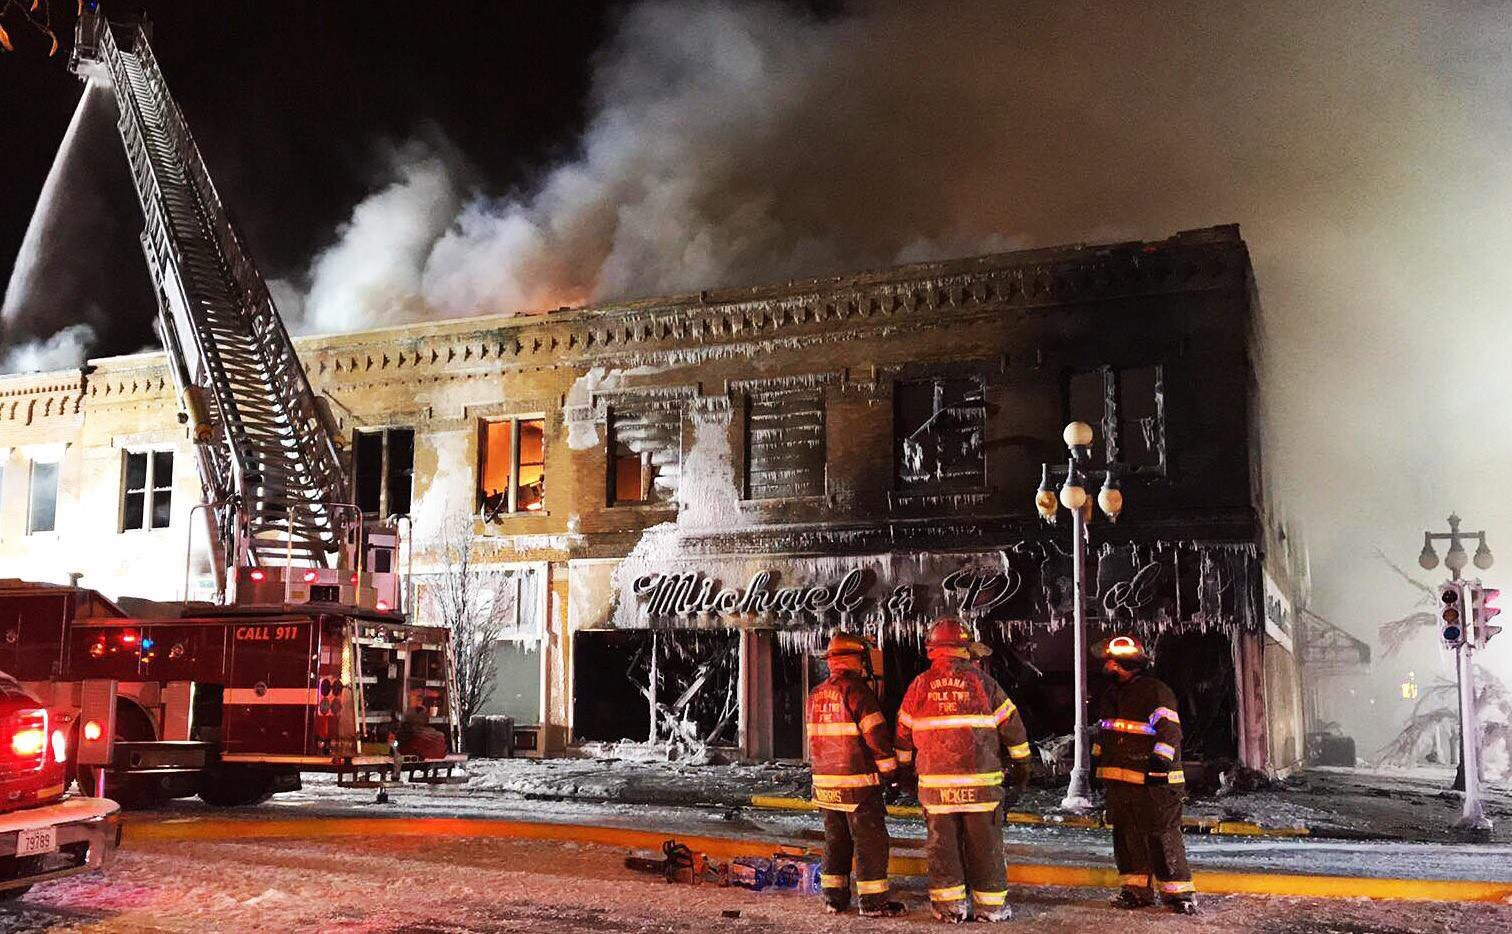 Fire Destroys Furniture Store in Vinton